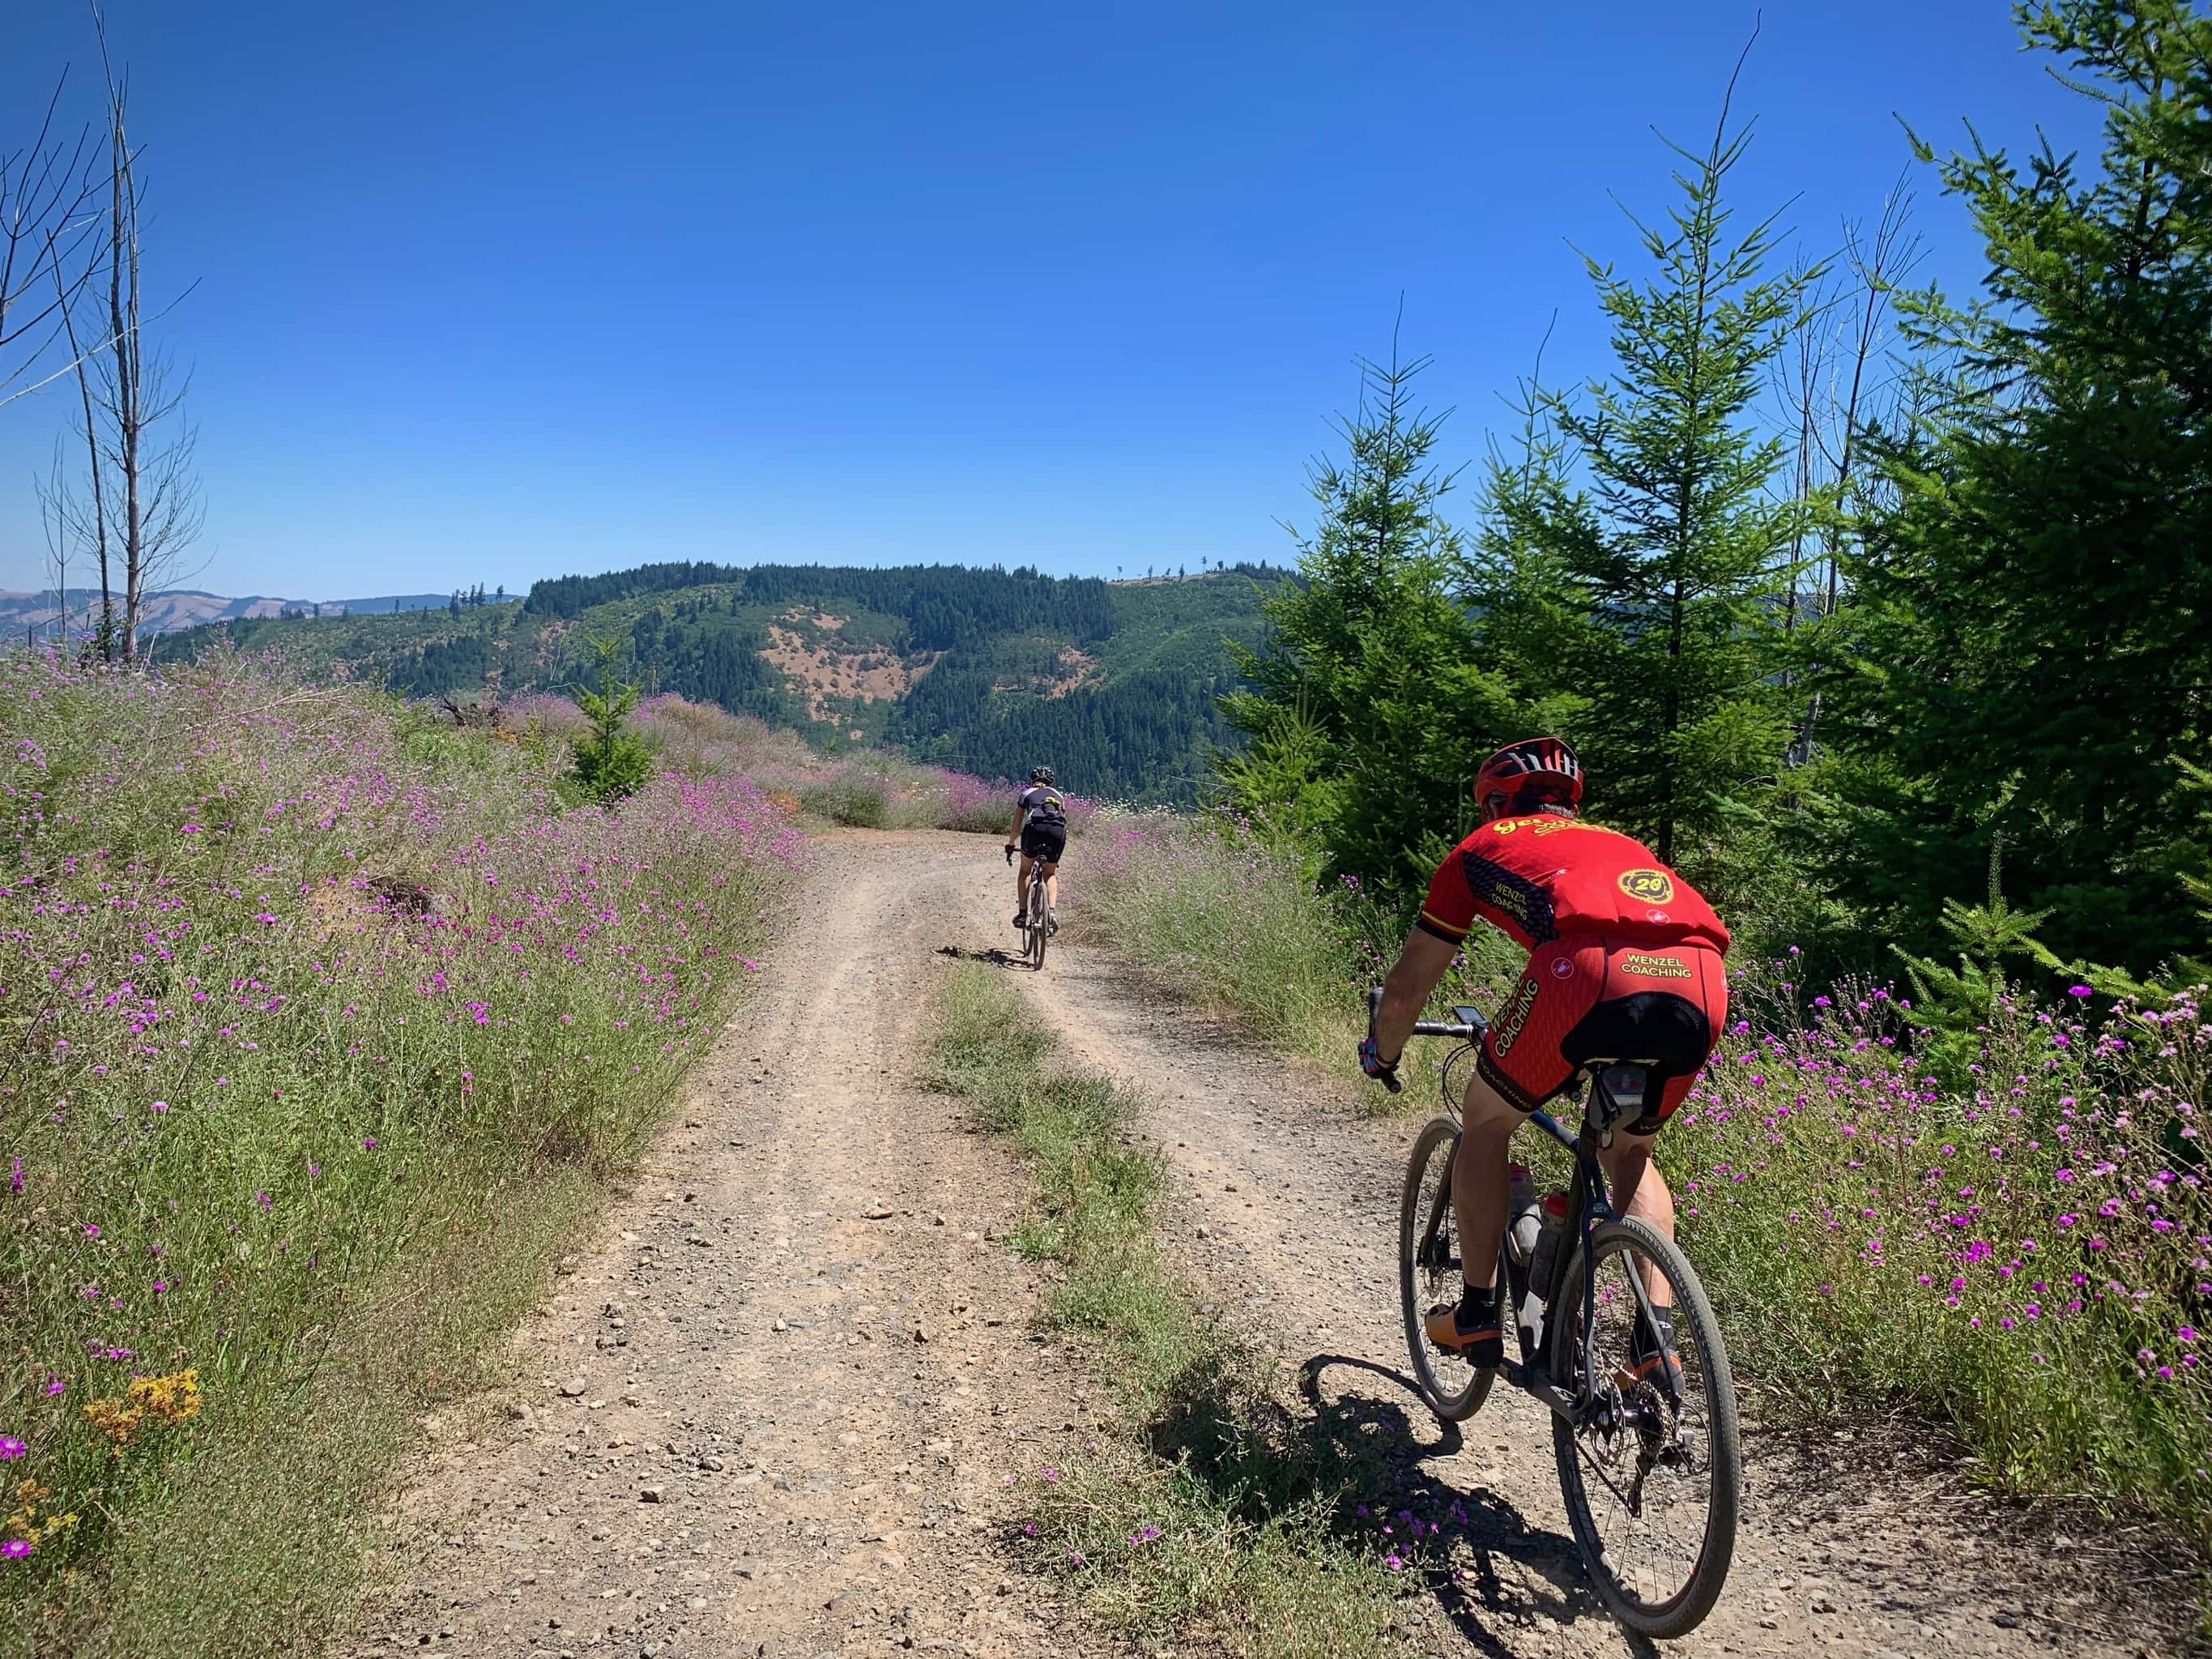 Two cyclists on gravel road with purple flowers near Dee, Oregon.